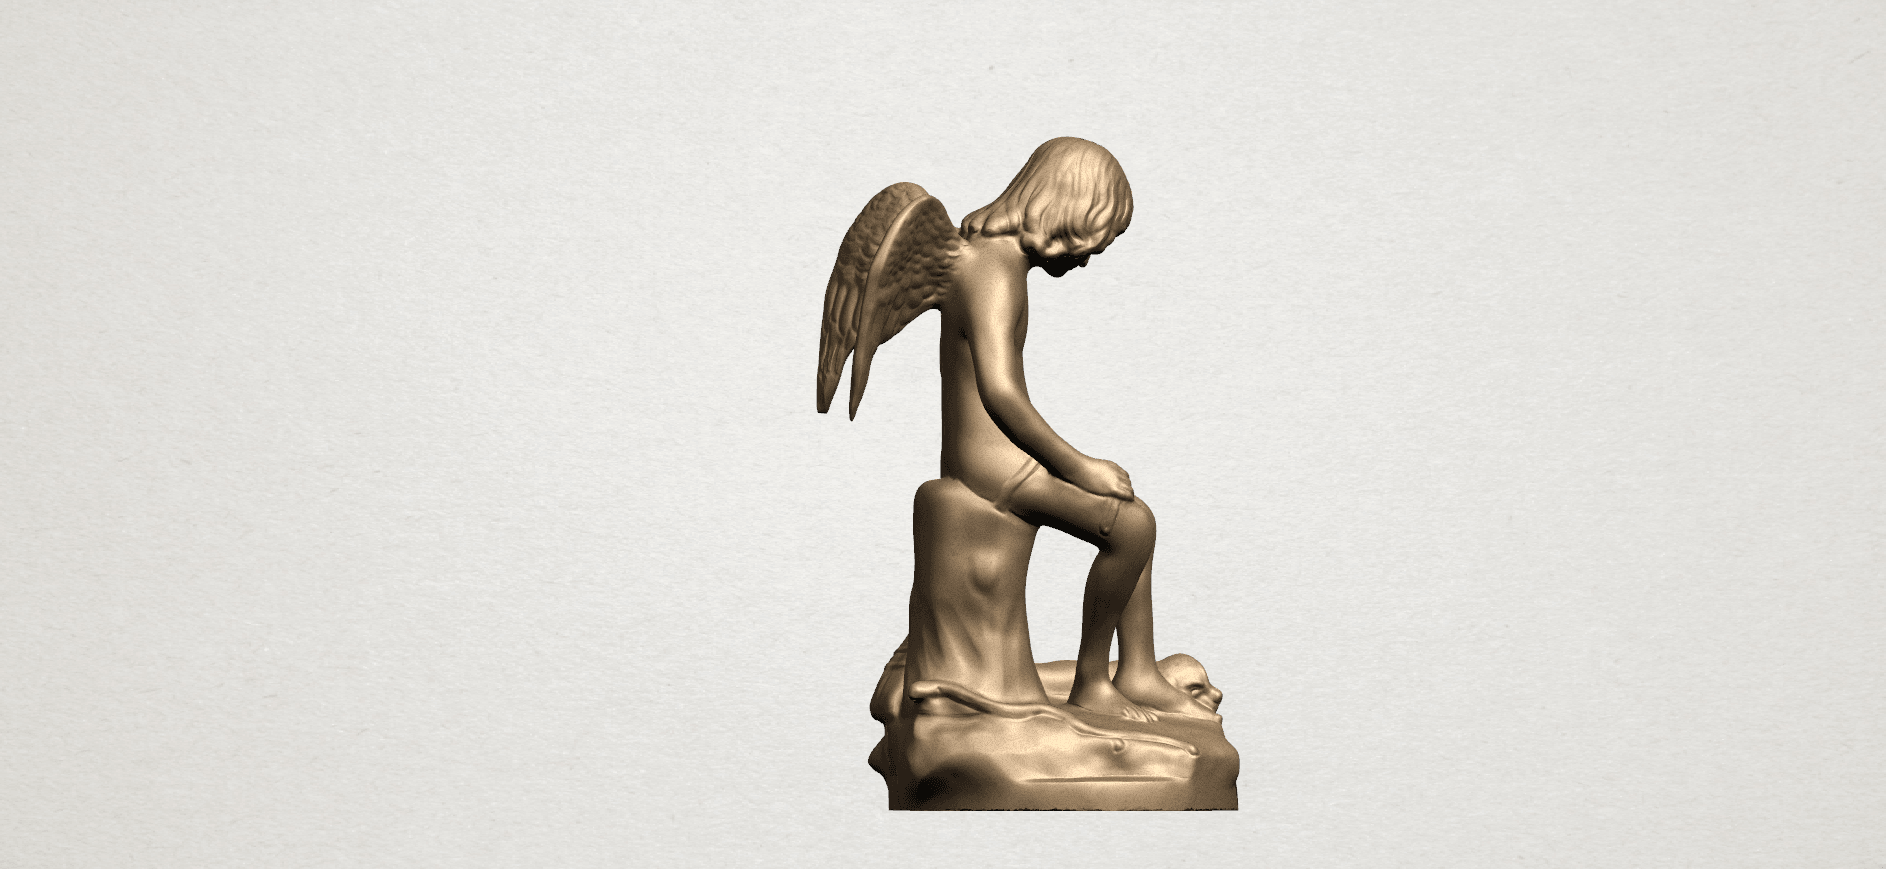 Angel and Dog A05.png Download free STL file Angel and Dog • 3D print model, GeorgesNikkei